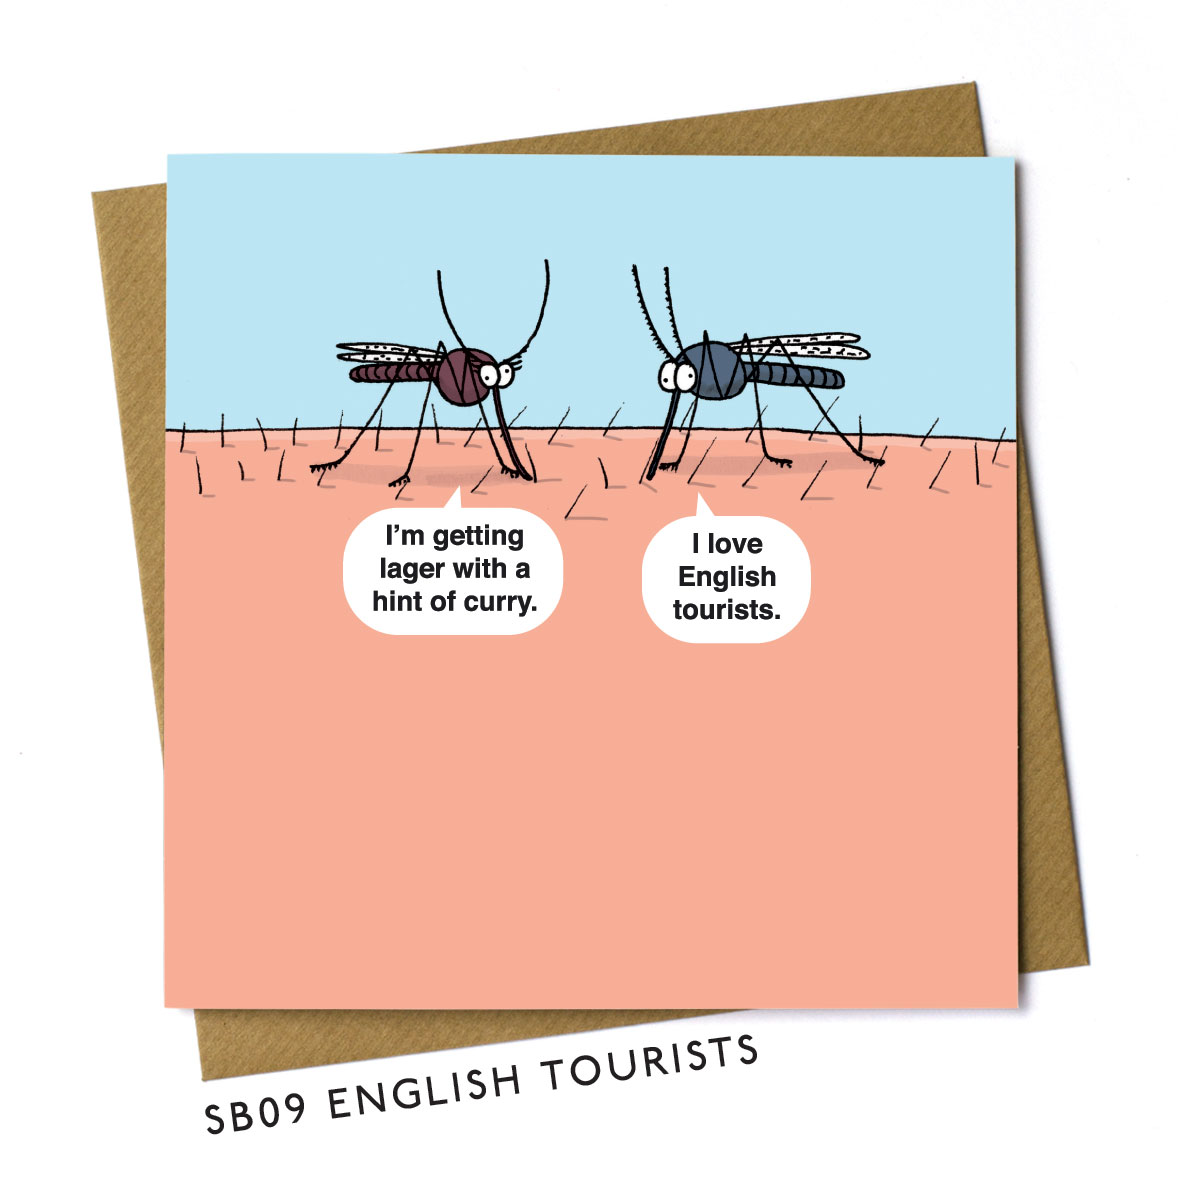 SB09-ENGLISH-TOURISTS.jpg